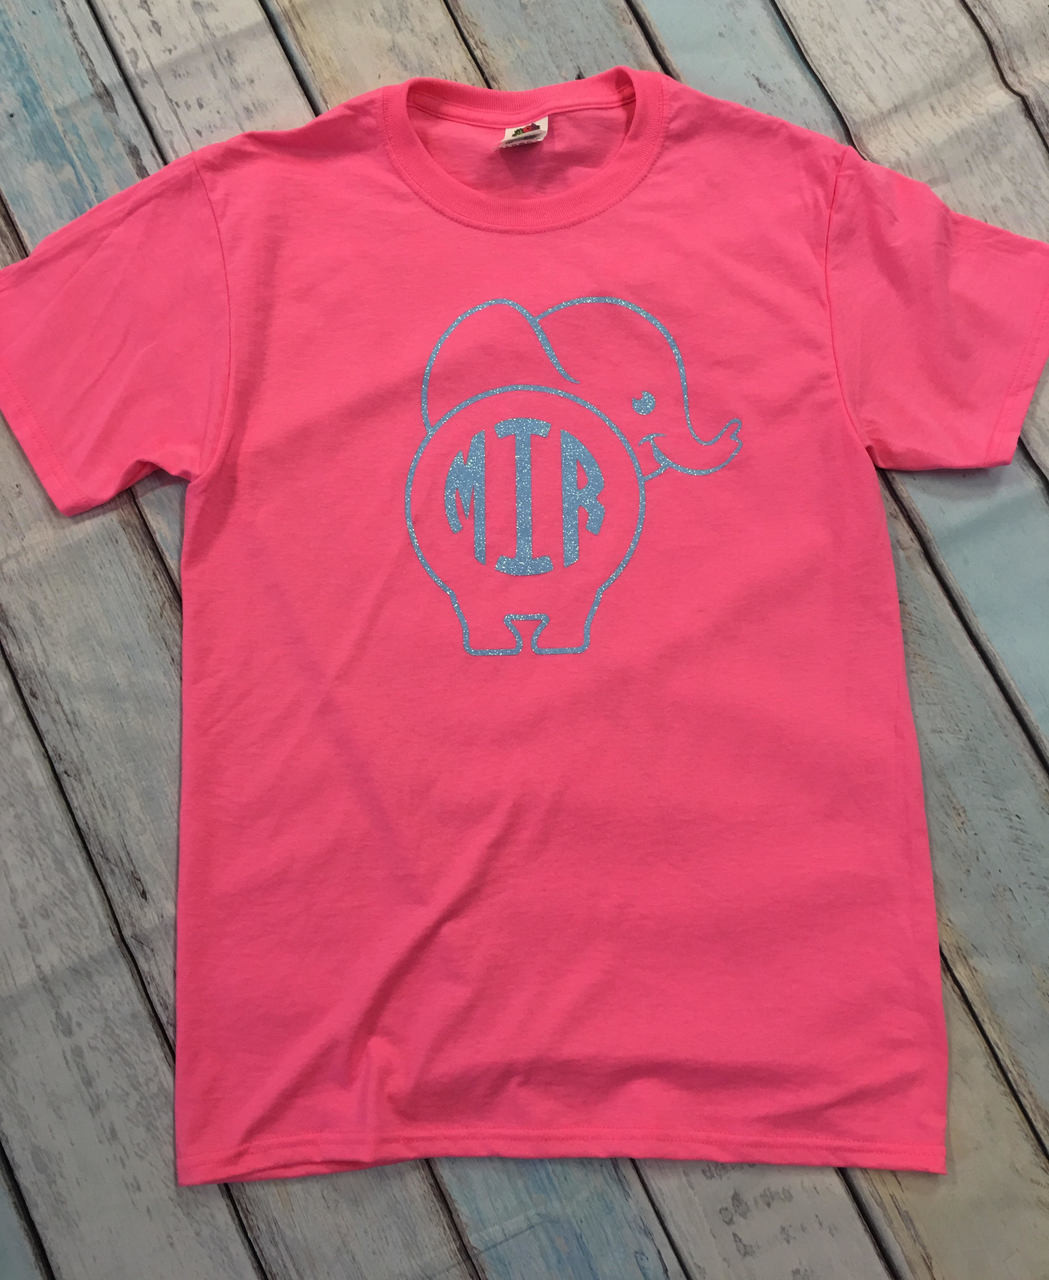 bc32ca88 Elephant Monogram Shirt - Personalized Shirt - Elephant Shirt - Monogrammed  Shirt - Make it Personal by MM